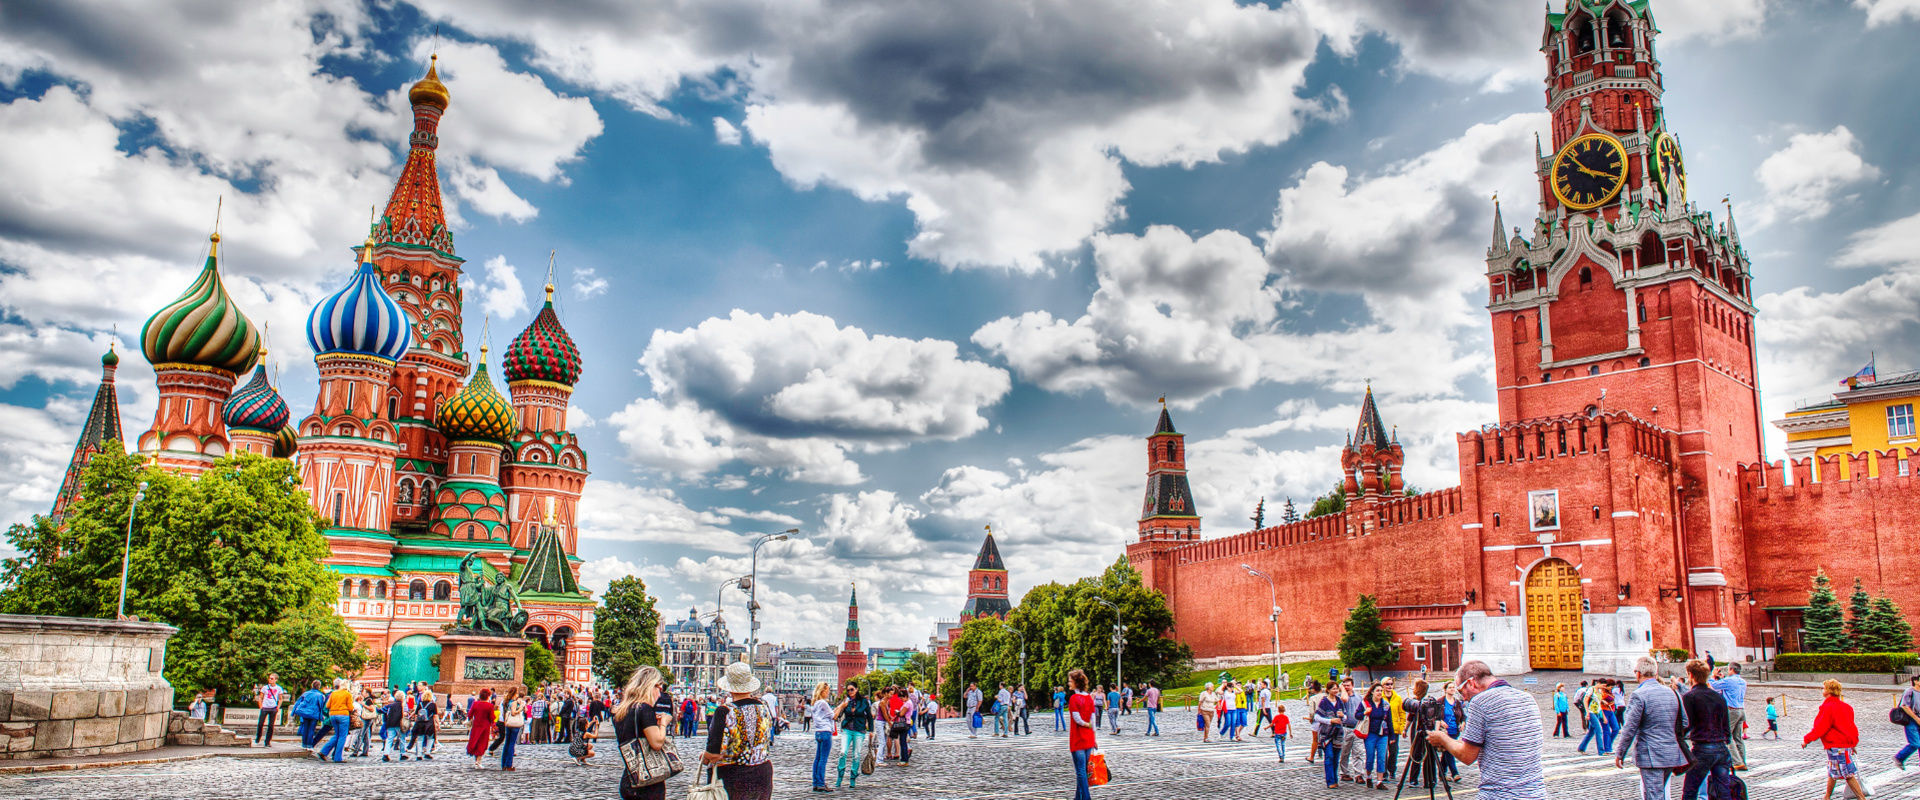 How To Apply For Russia Student Visa From Nigeria